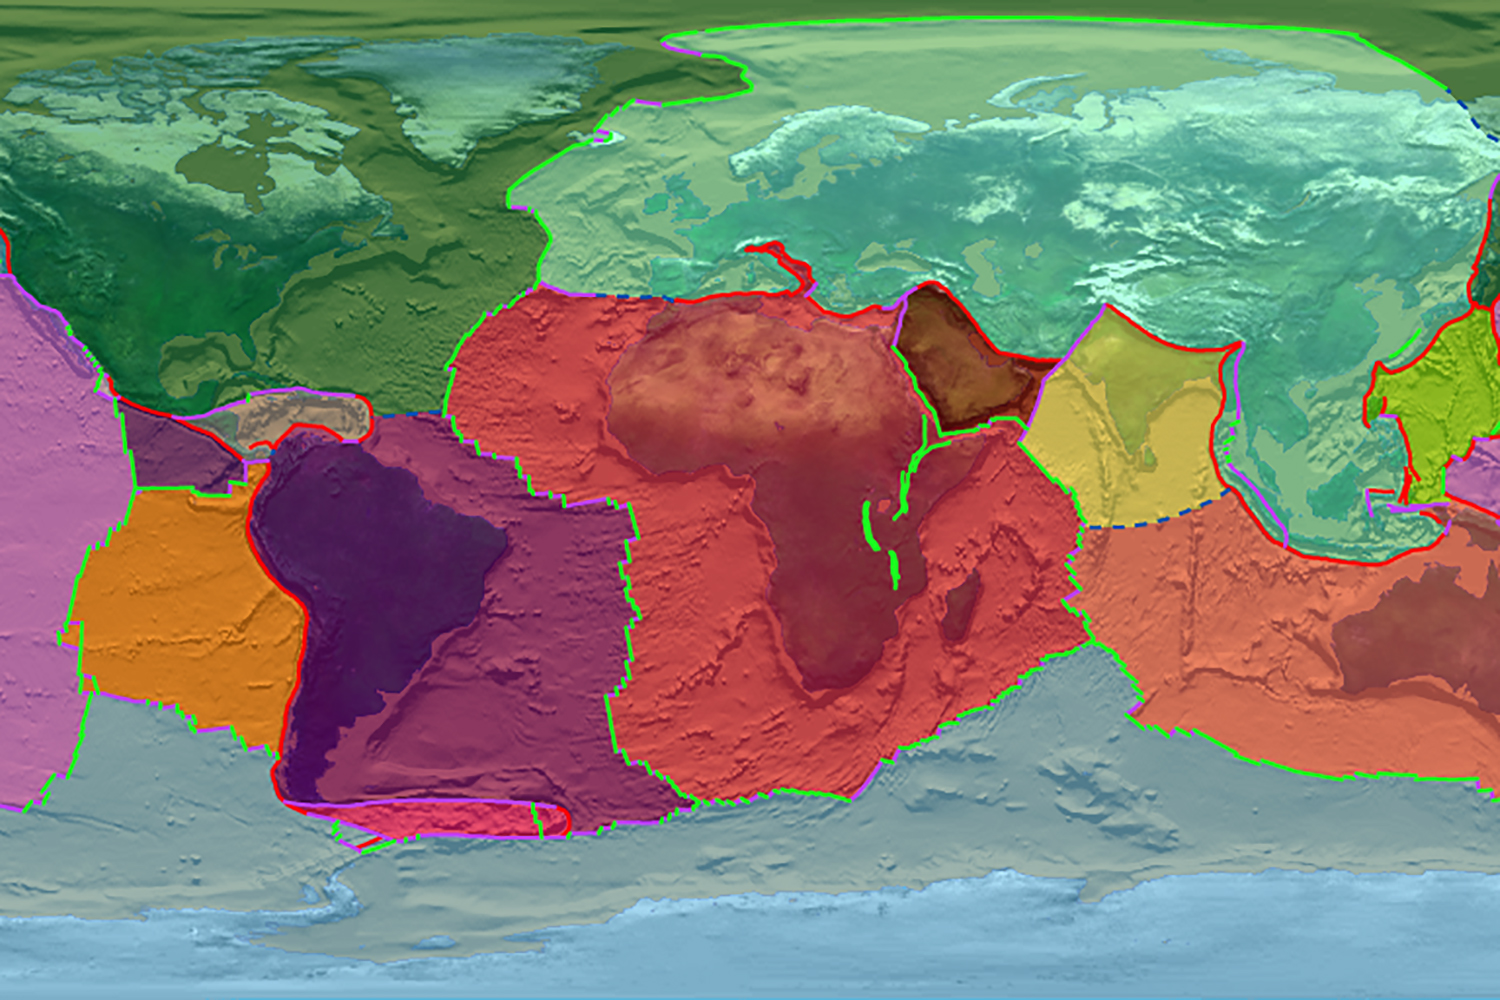 Study Plate Tectonics May Have Been Active On Earth Since